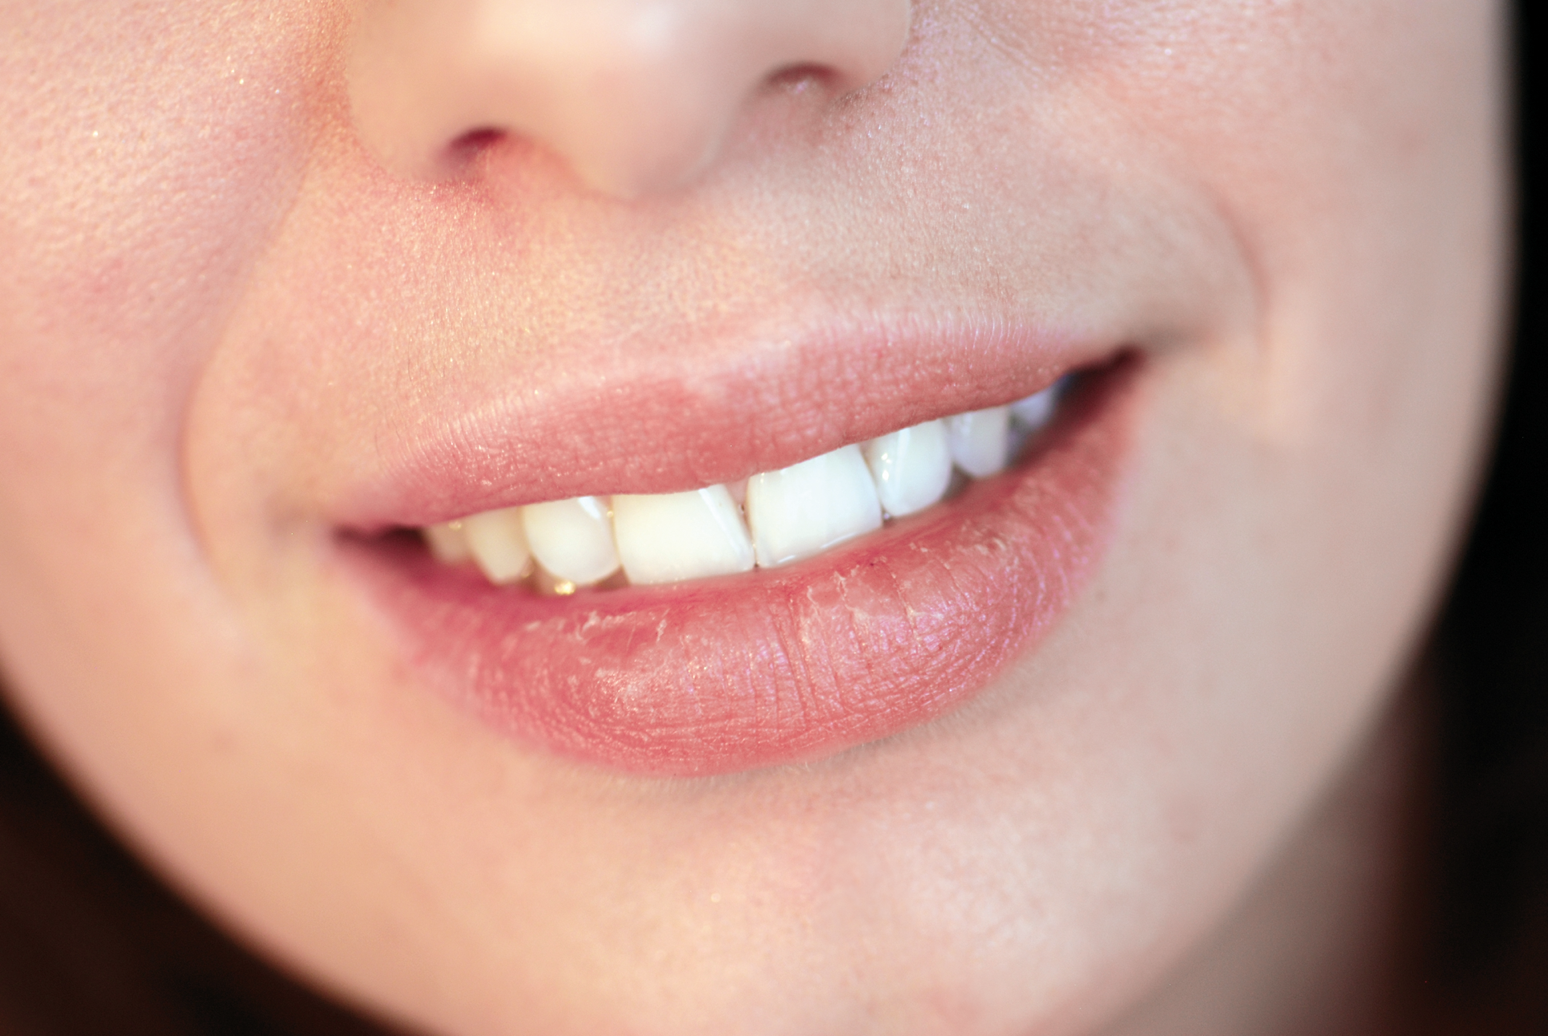 Dry Mouth can lead to bigger dental health issues